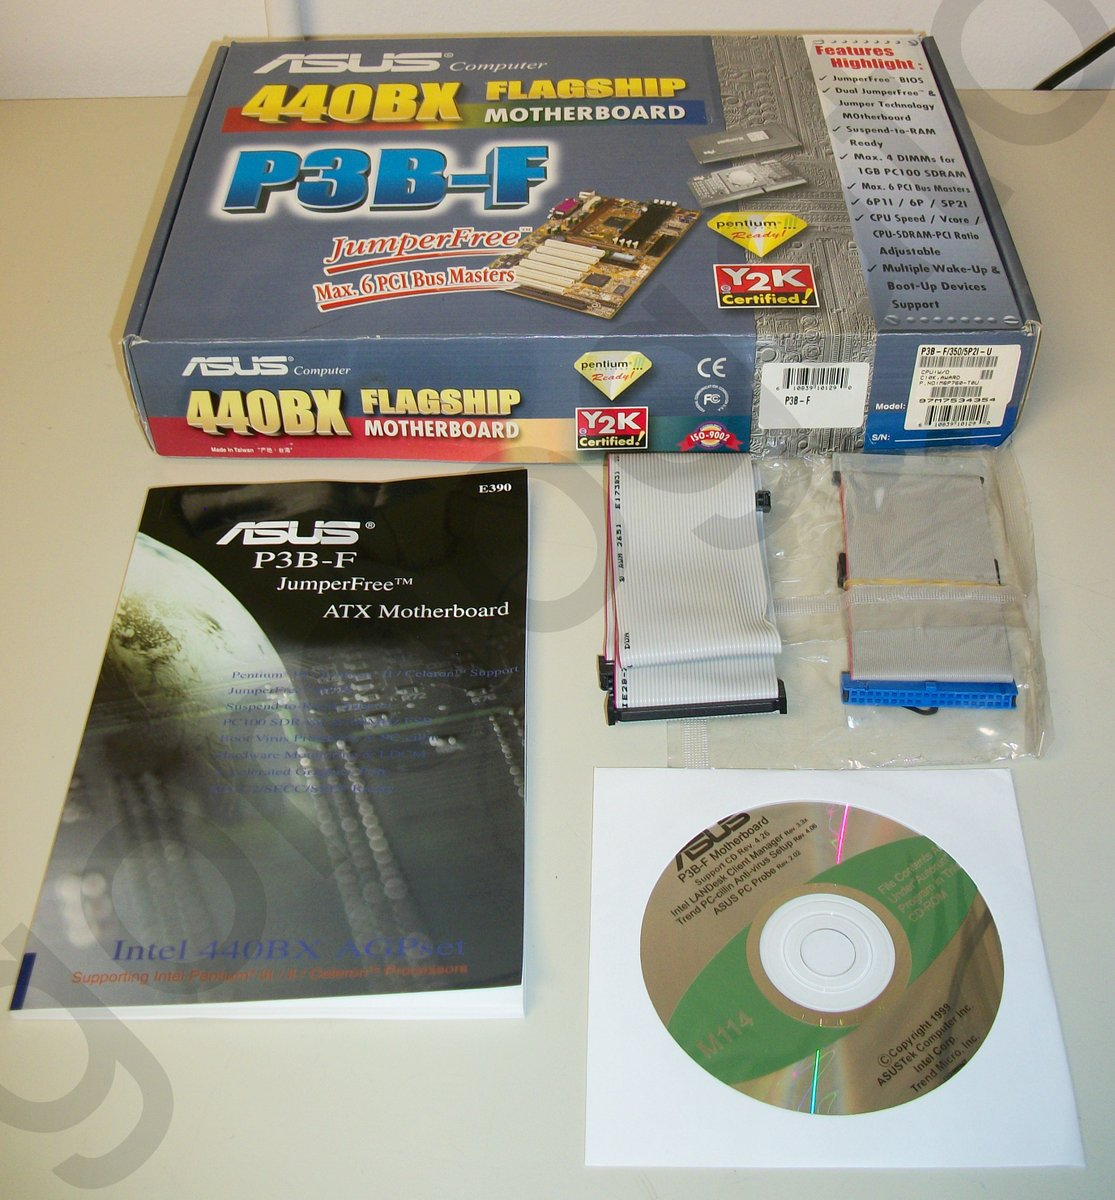 Iso image of original driver cd disc for asus p3b-f 440bx flagship.